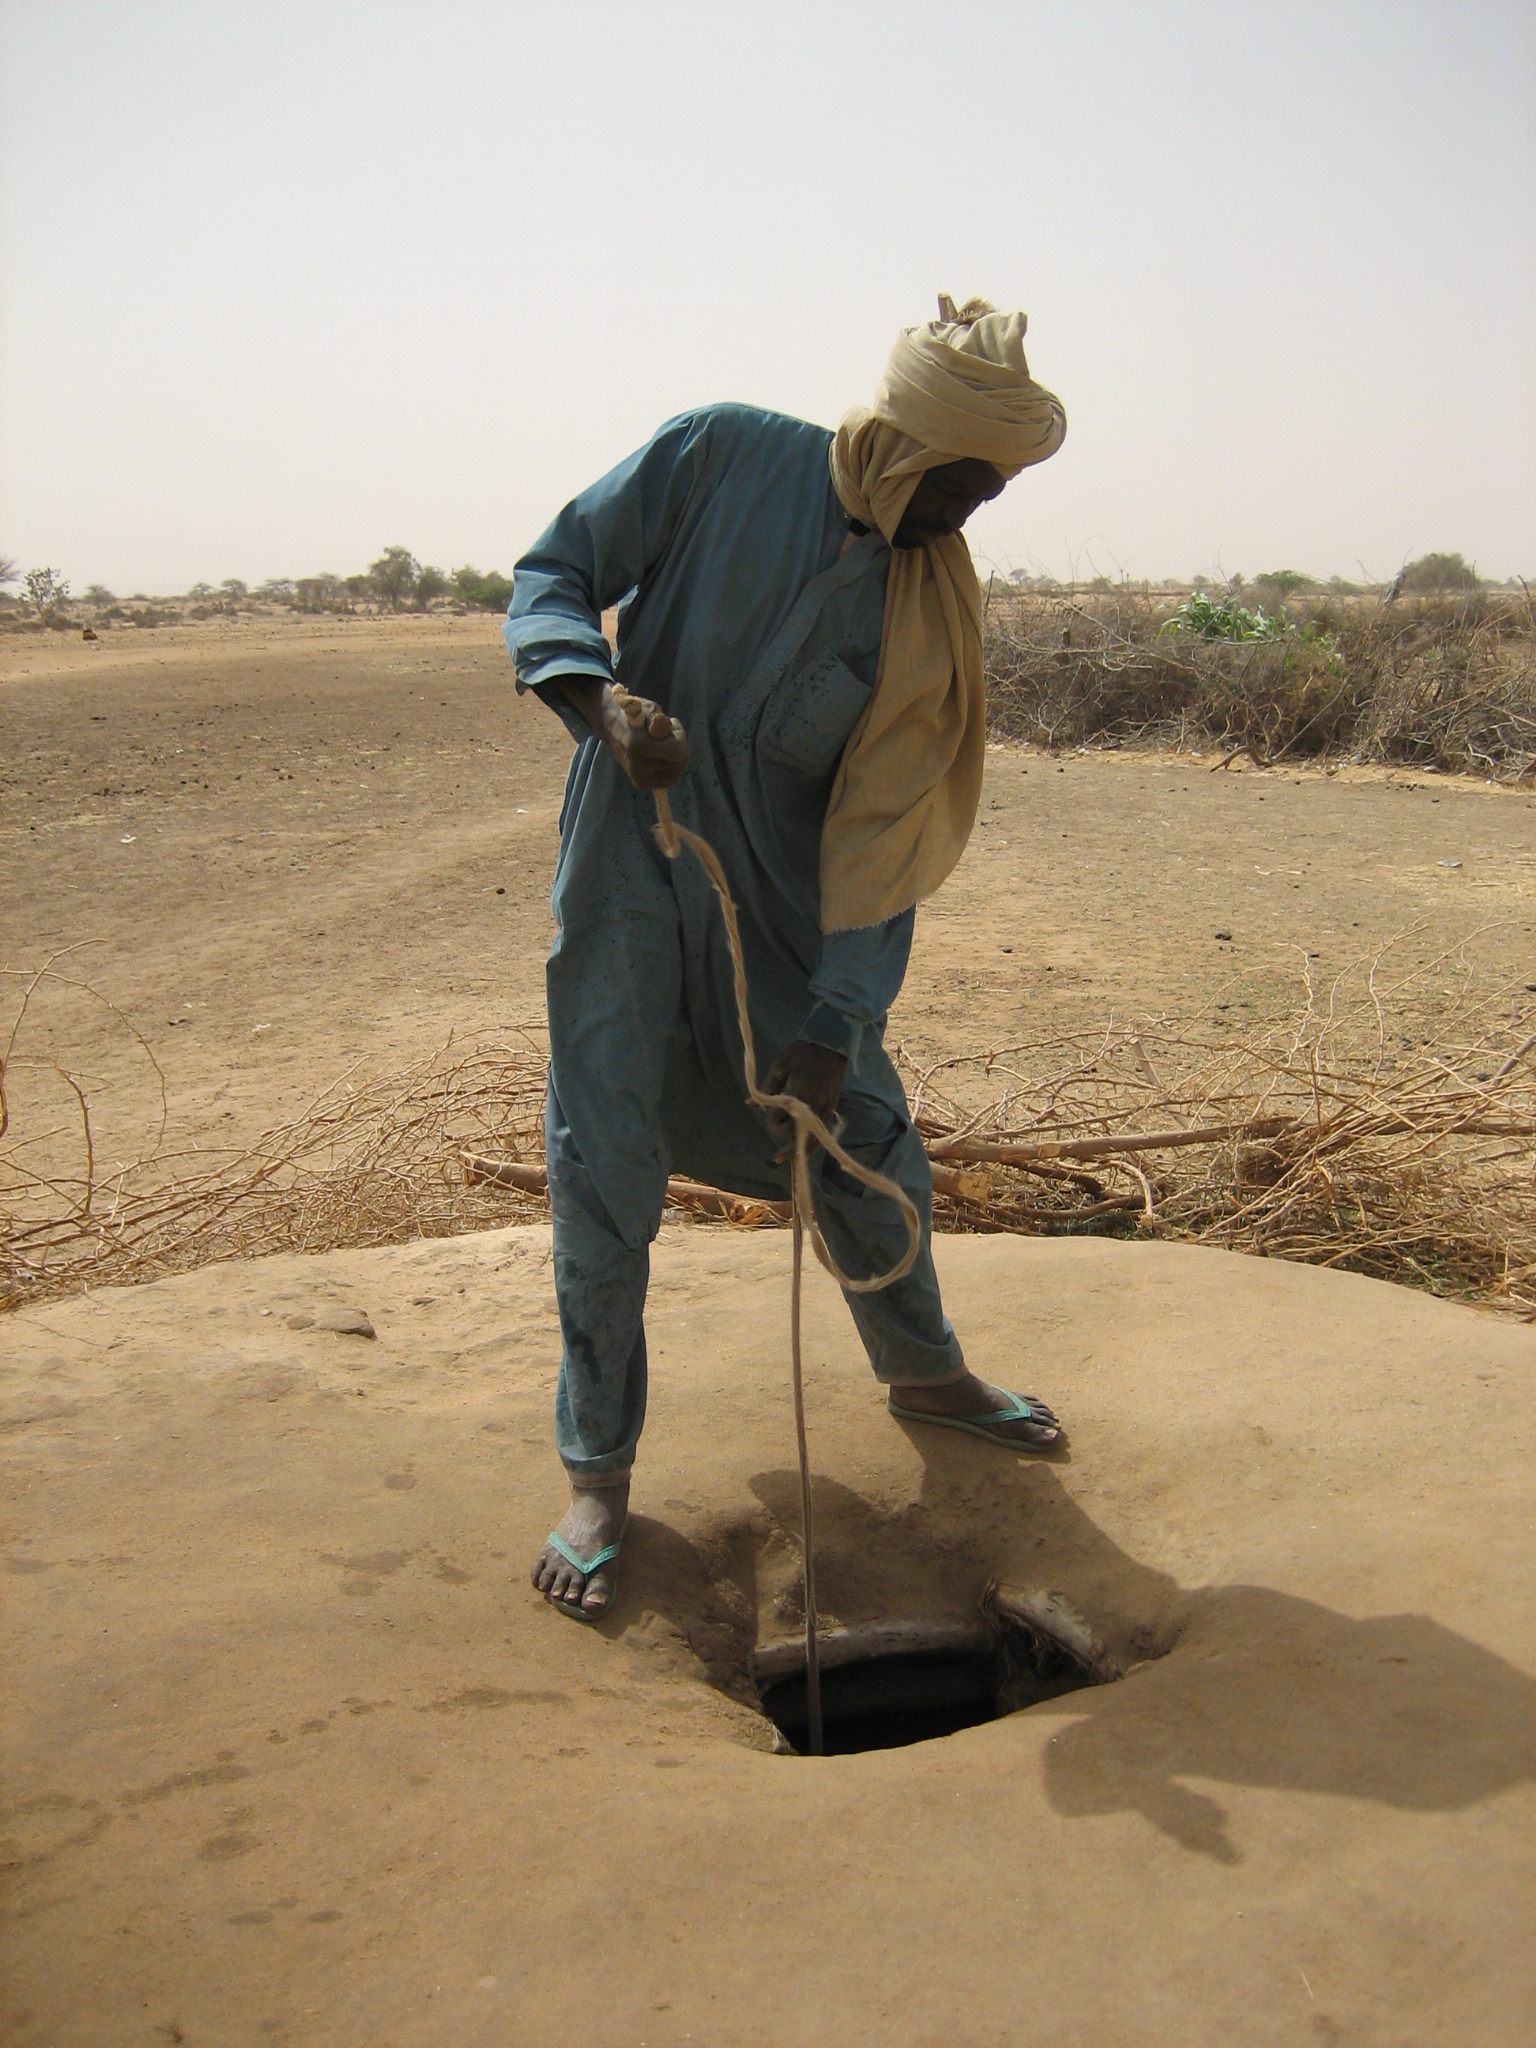 A man using a basic, traditional well in the Tahoua region of central Niger. Some 60 percent of Nigeriens do not have regular access to clean, modern water sources.